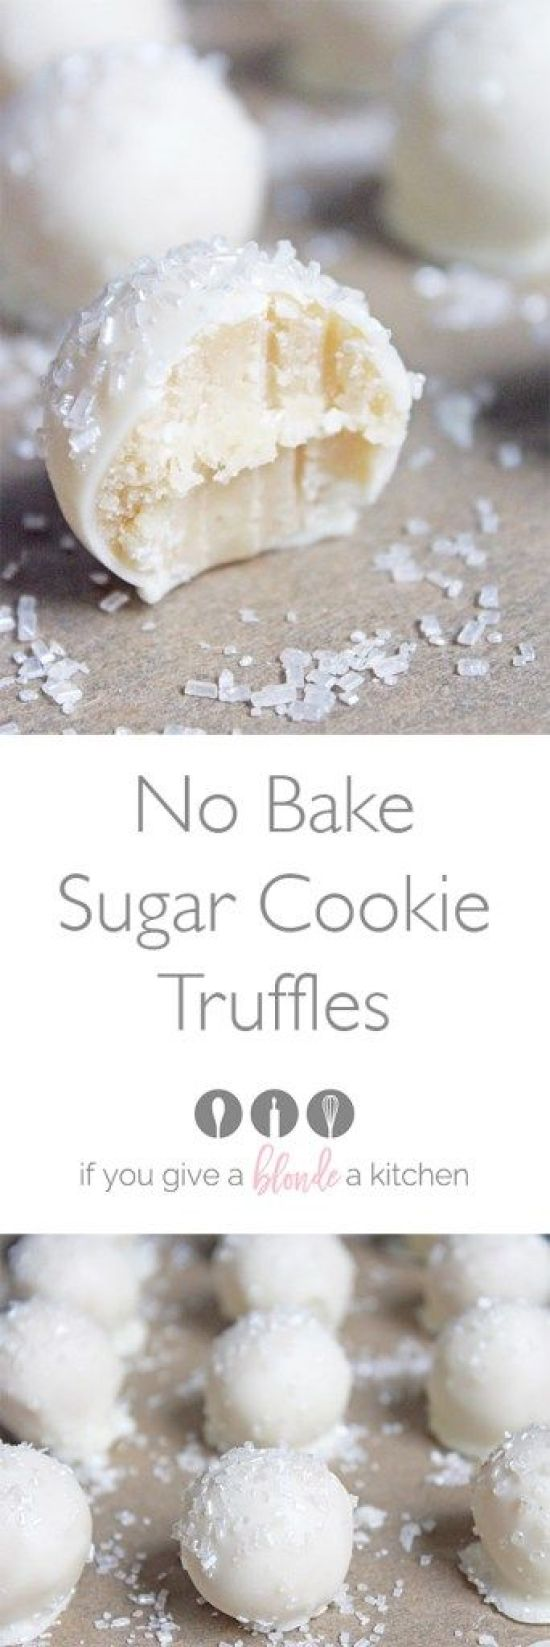 No Bake Sugar Cookie Truffles Recipe | If You Give a Blonde a Kitchen